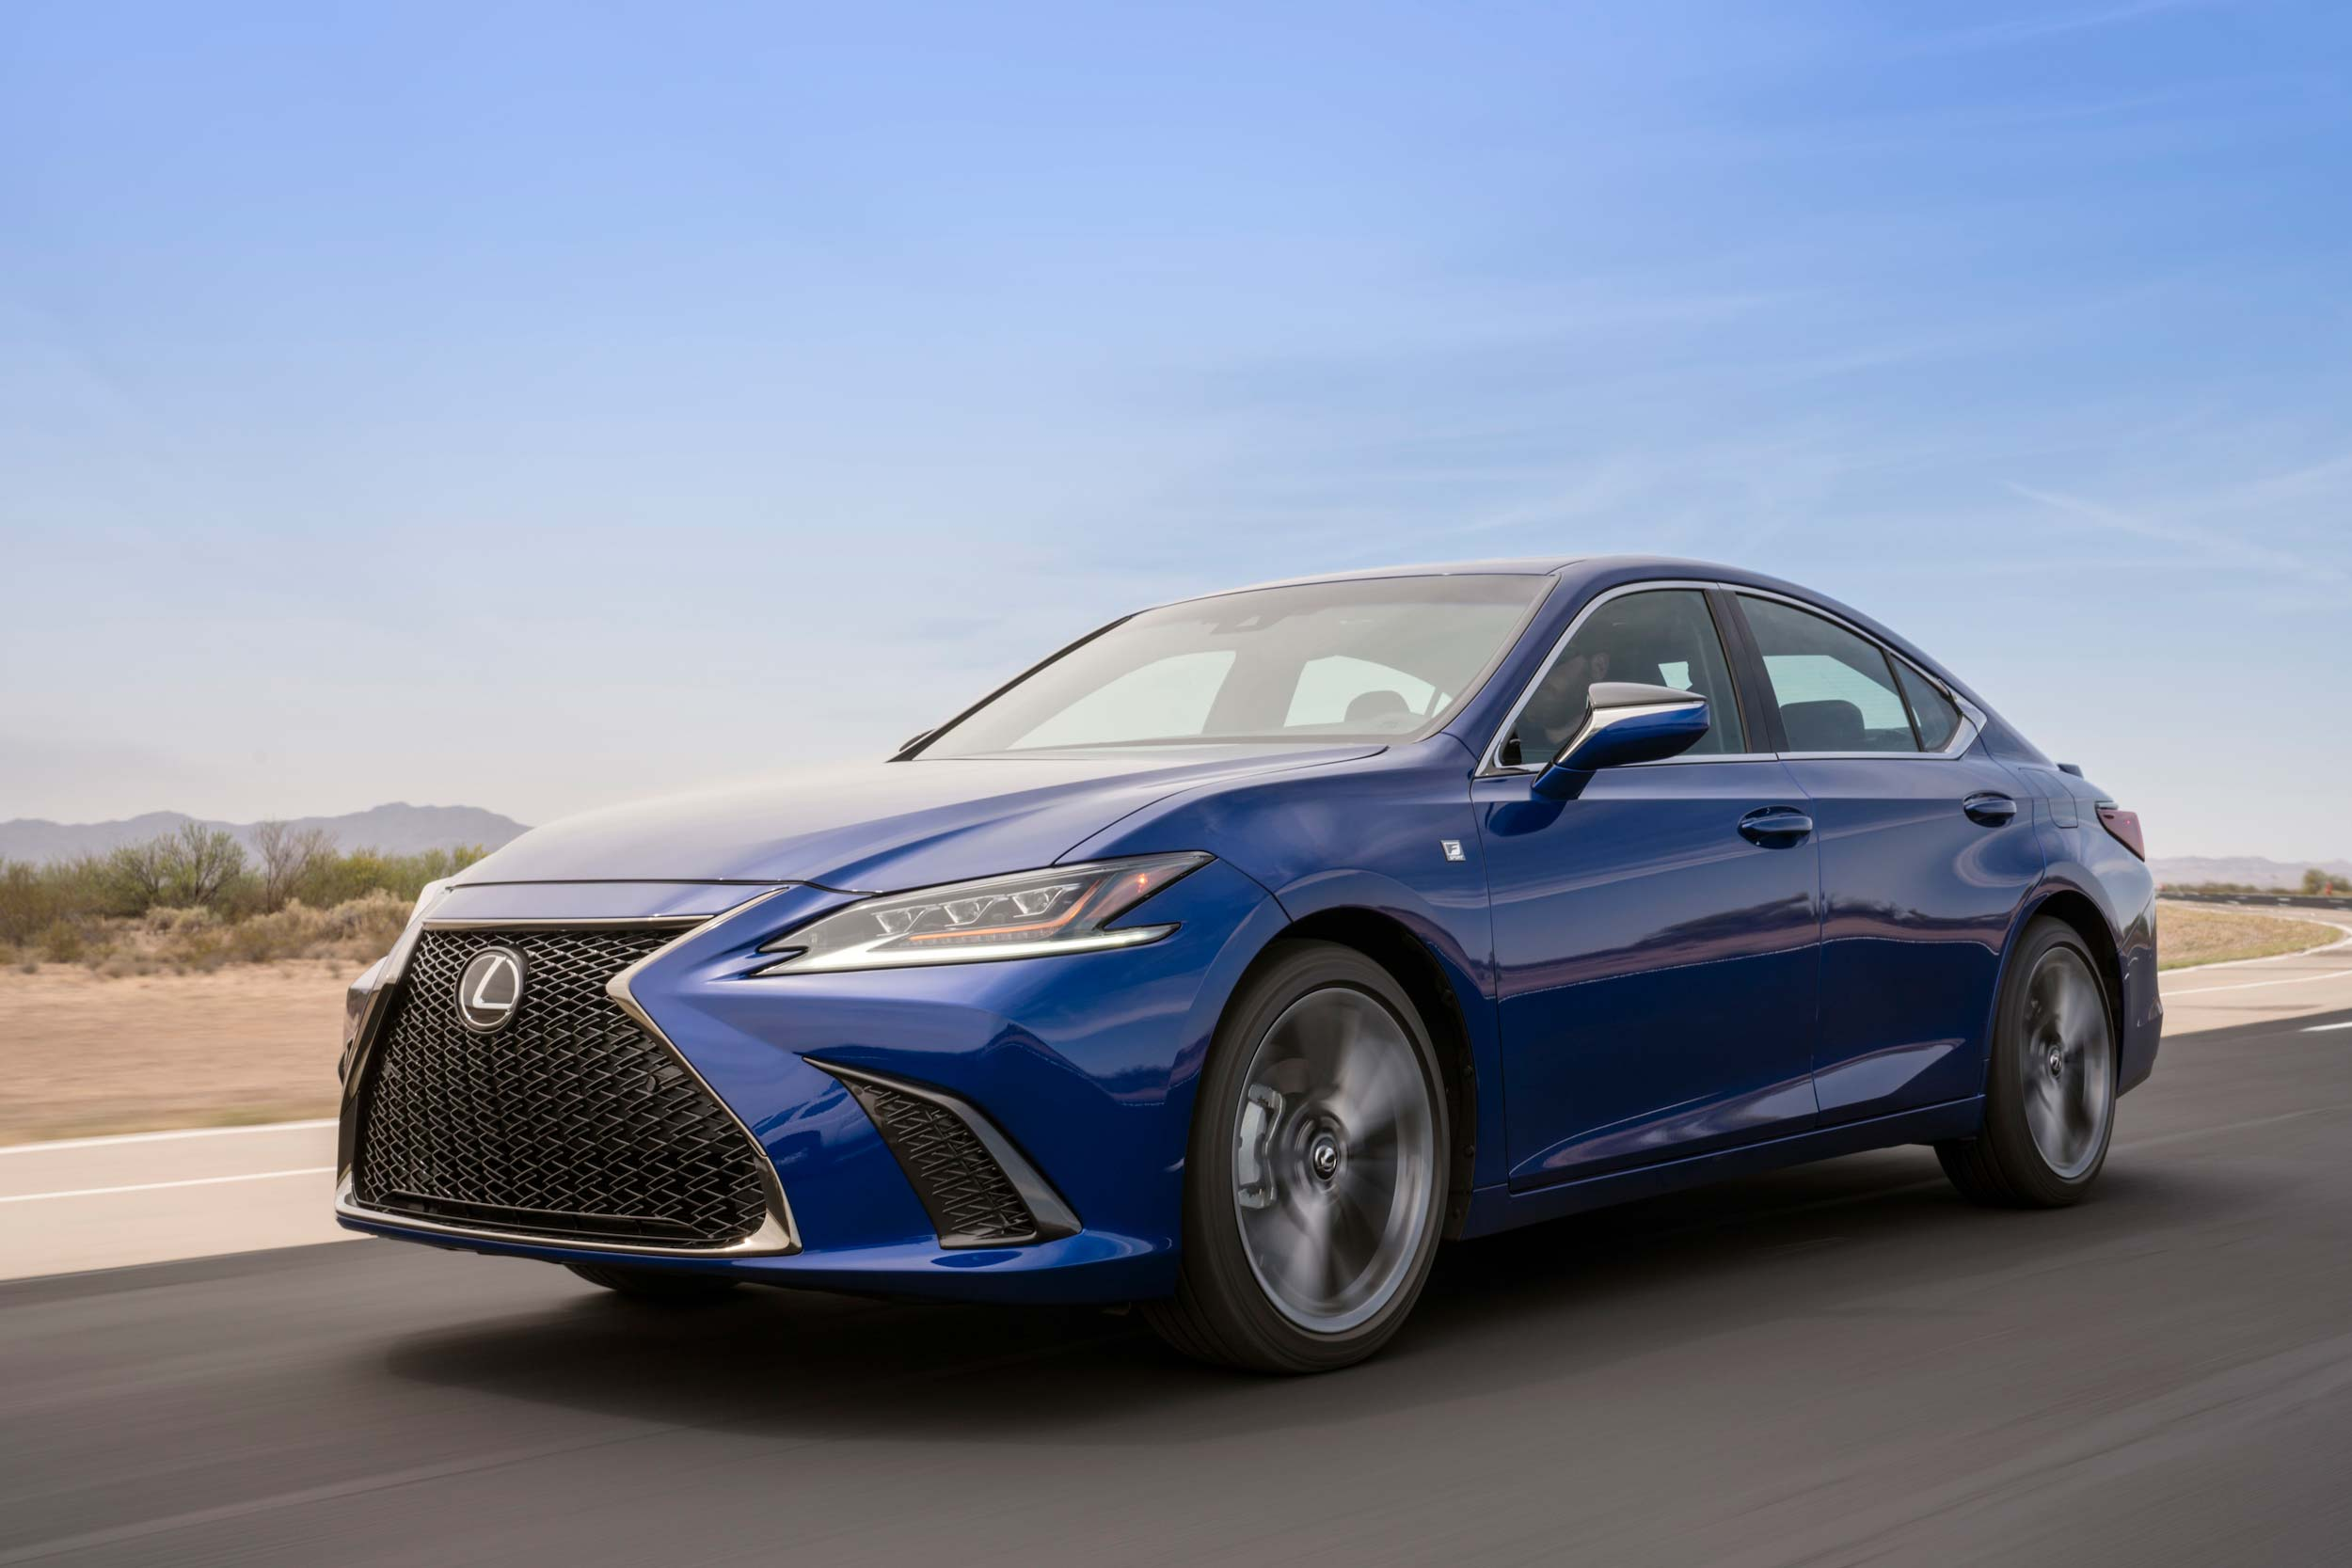 Best Luxury Vehicles: The 10 Best Midsize Luxury Cars For 2019